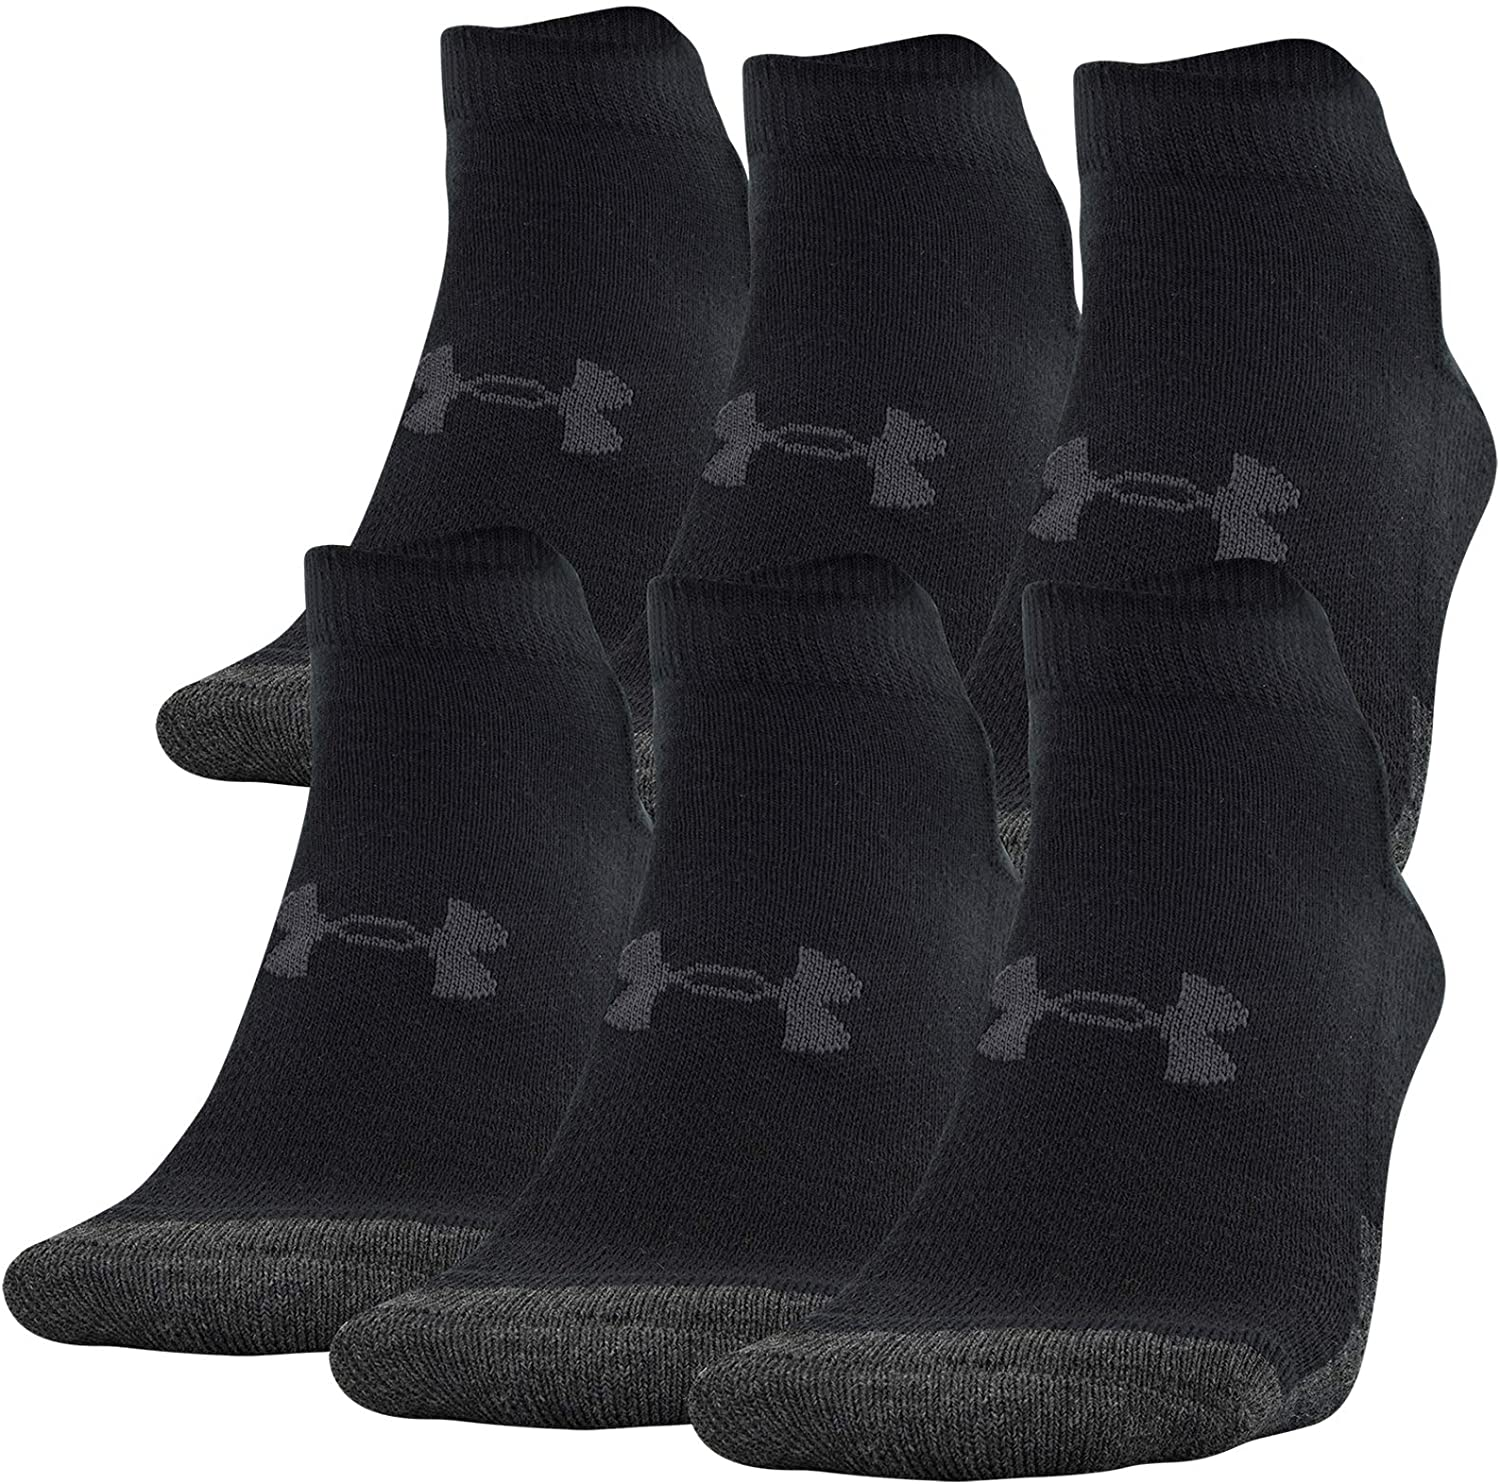 Under Armour Adult Performance Tech Low Cut Socks (3 and 6 Pack)